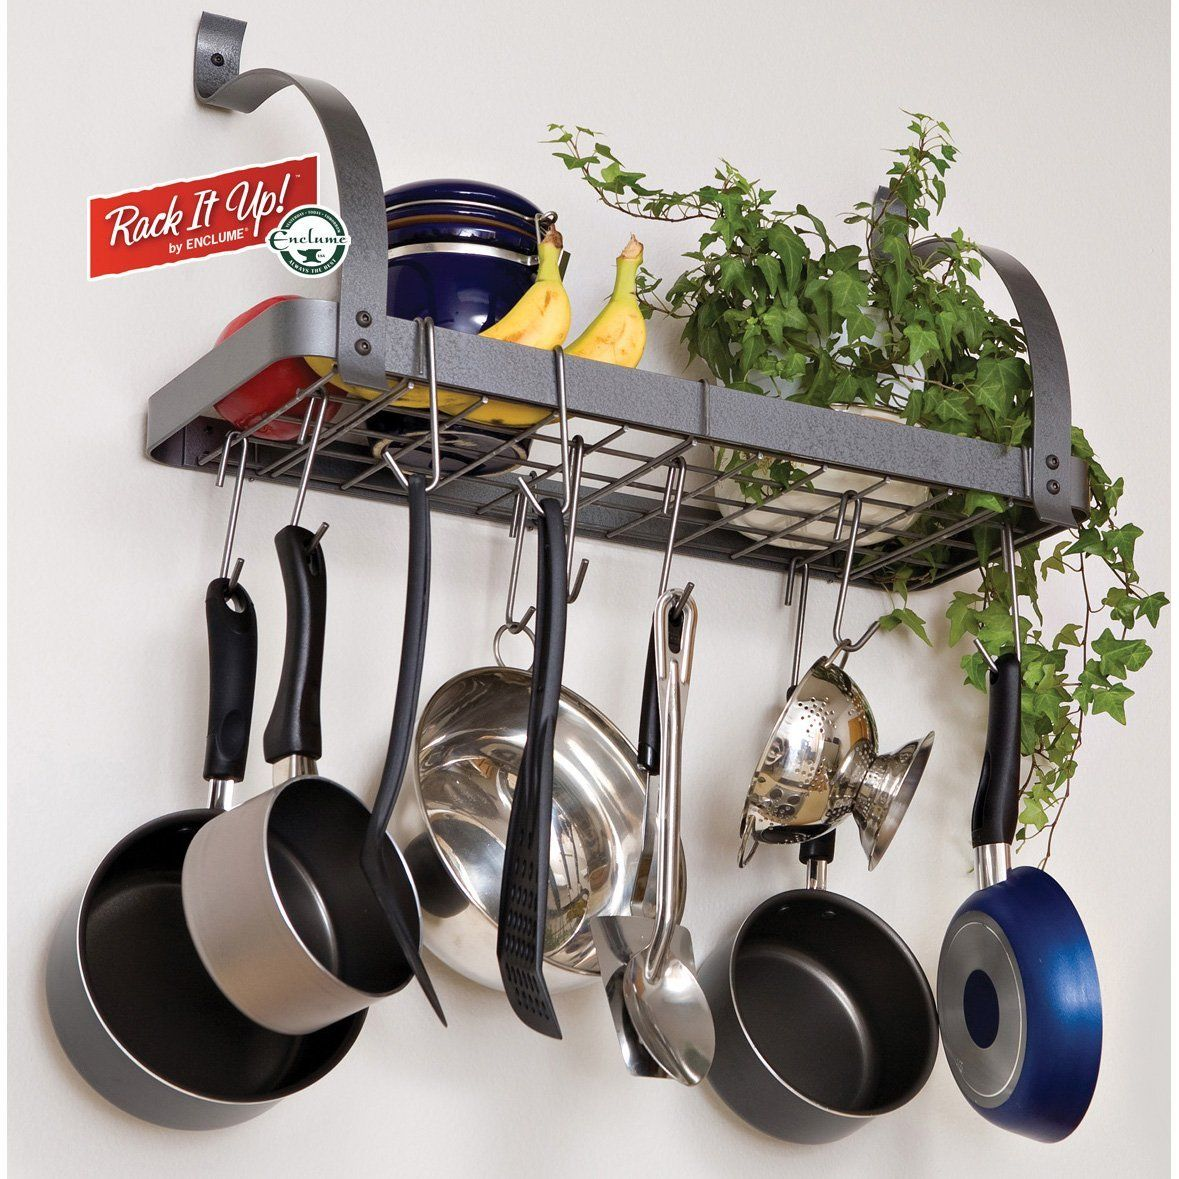 Enclume rack it up bookshelf wall rack for Pot racks for kitchen